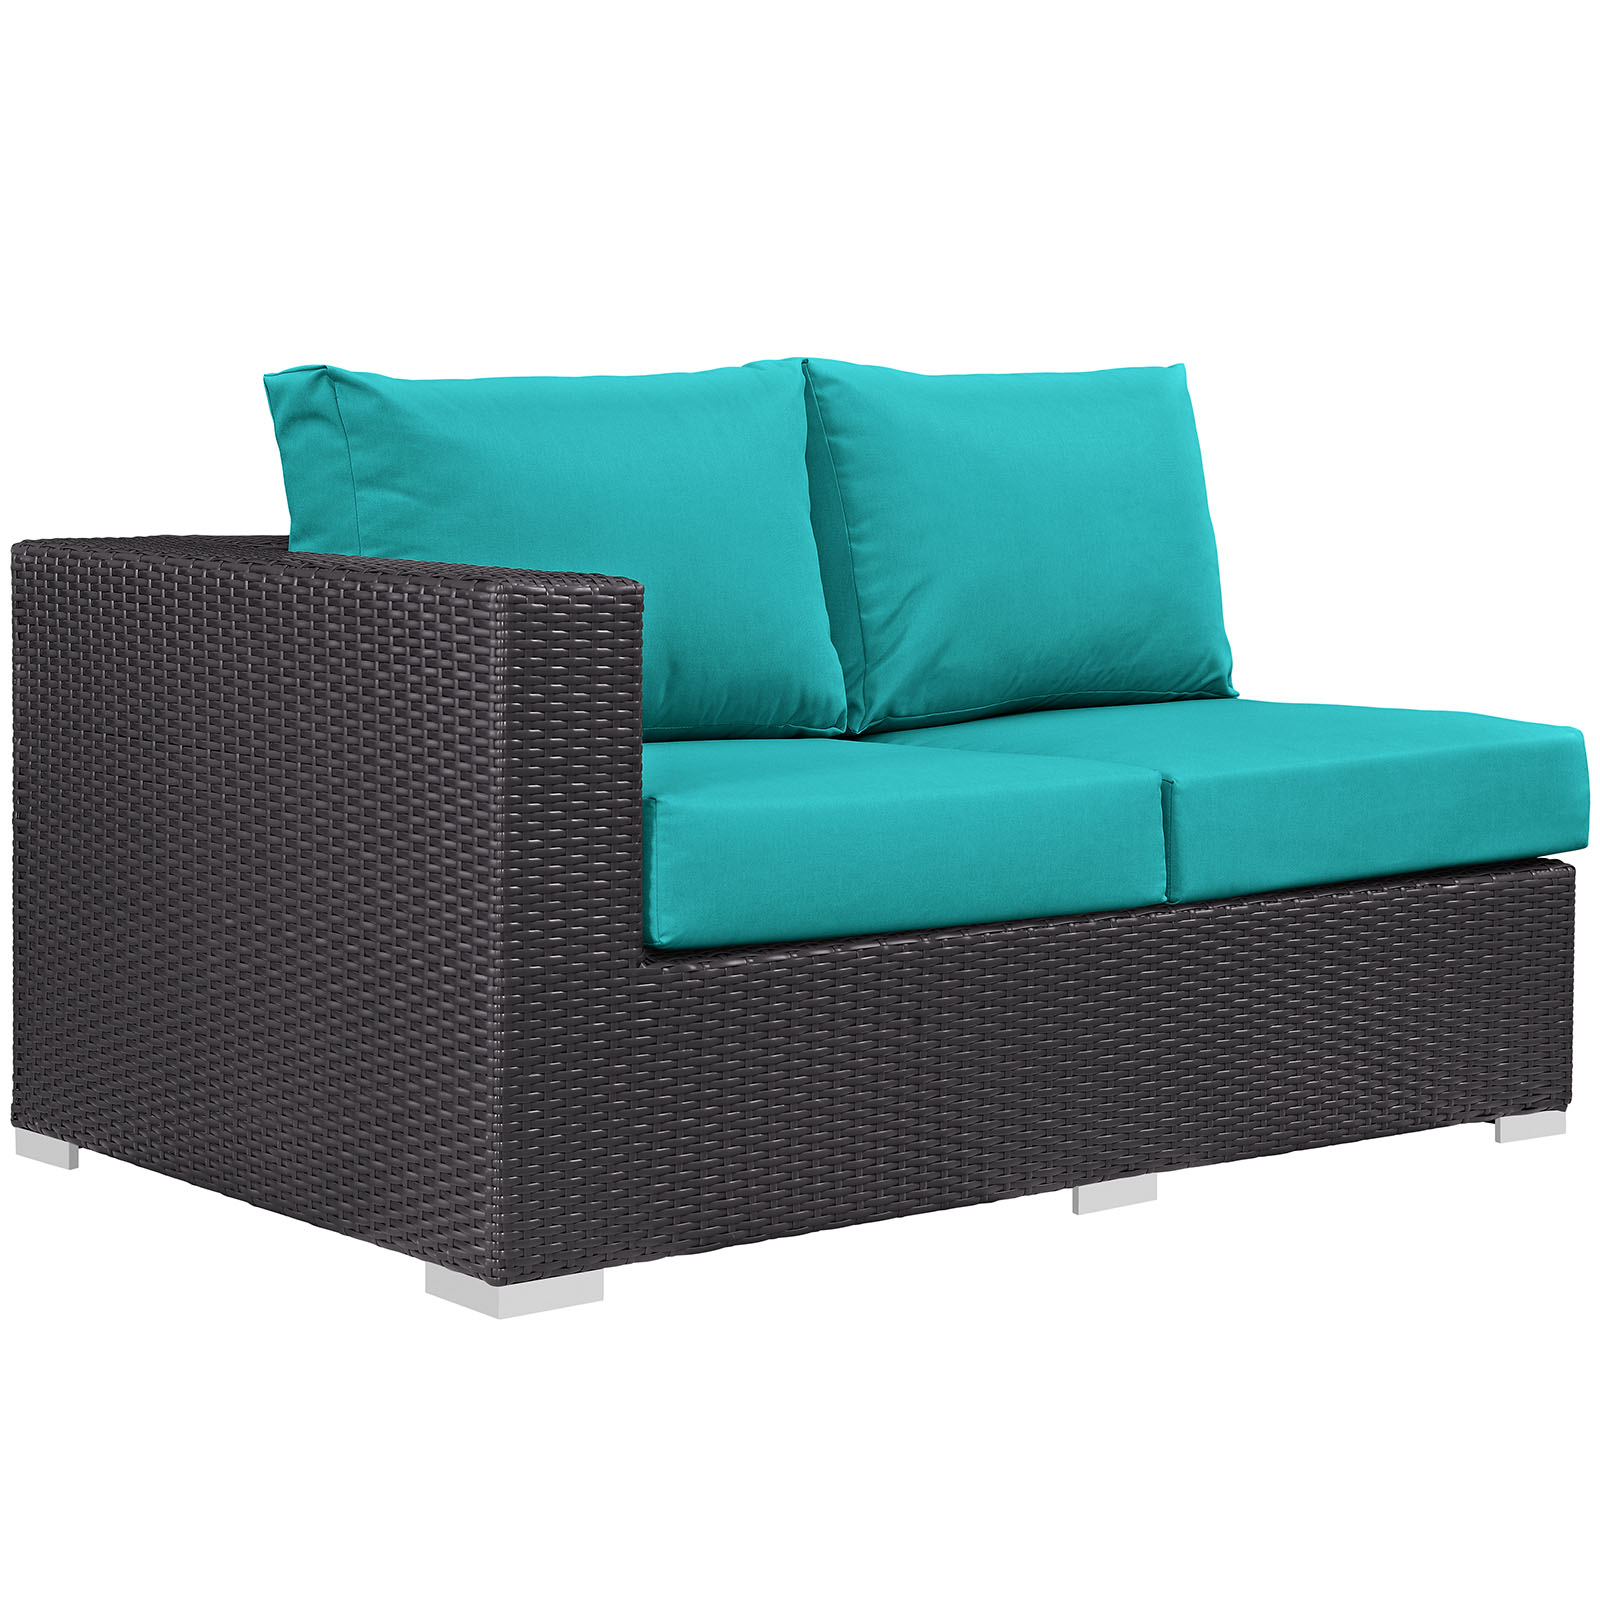 Modern Contemporary Urban Design Outdoor Patio Balcony Left Arm Loveseat Sofa, Blue, Rattan